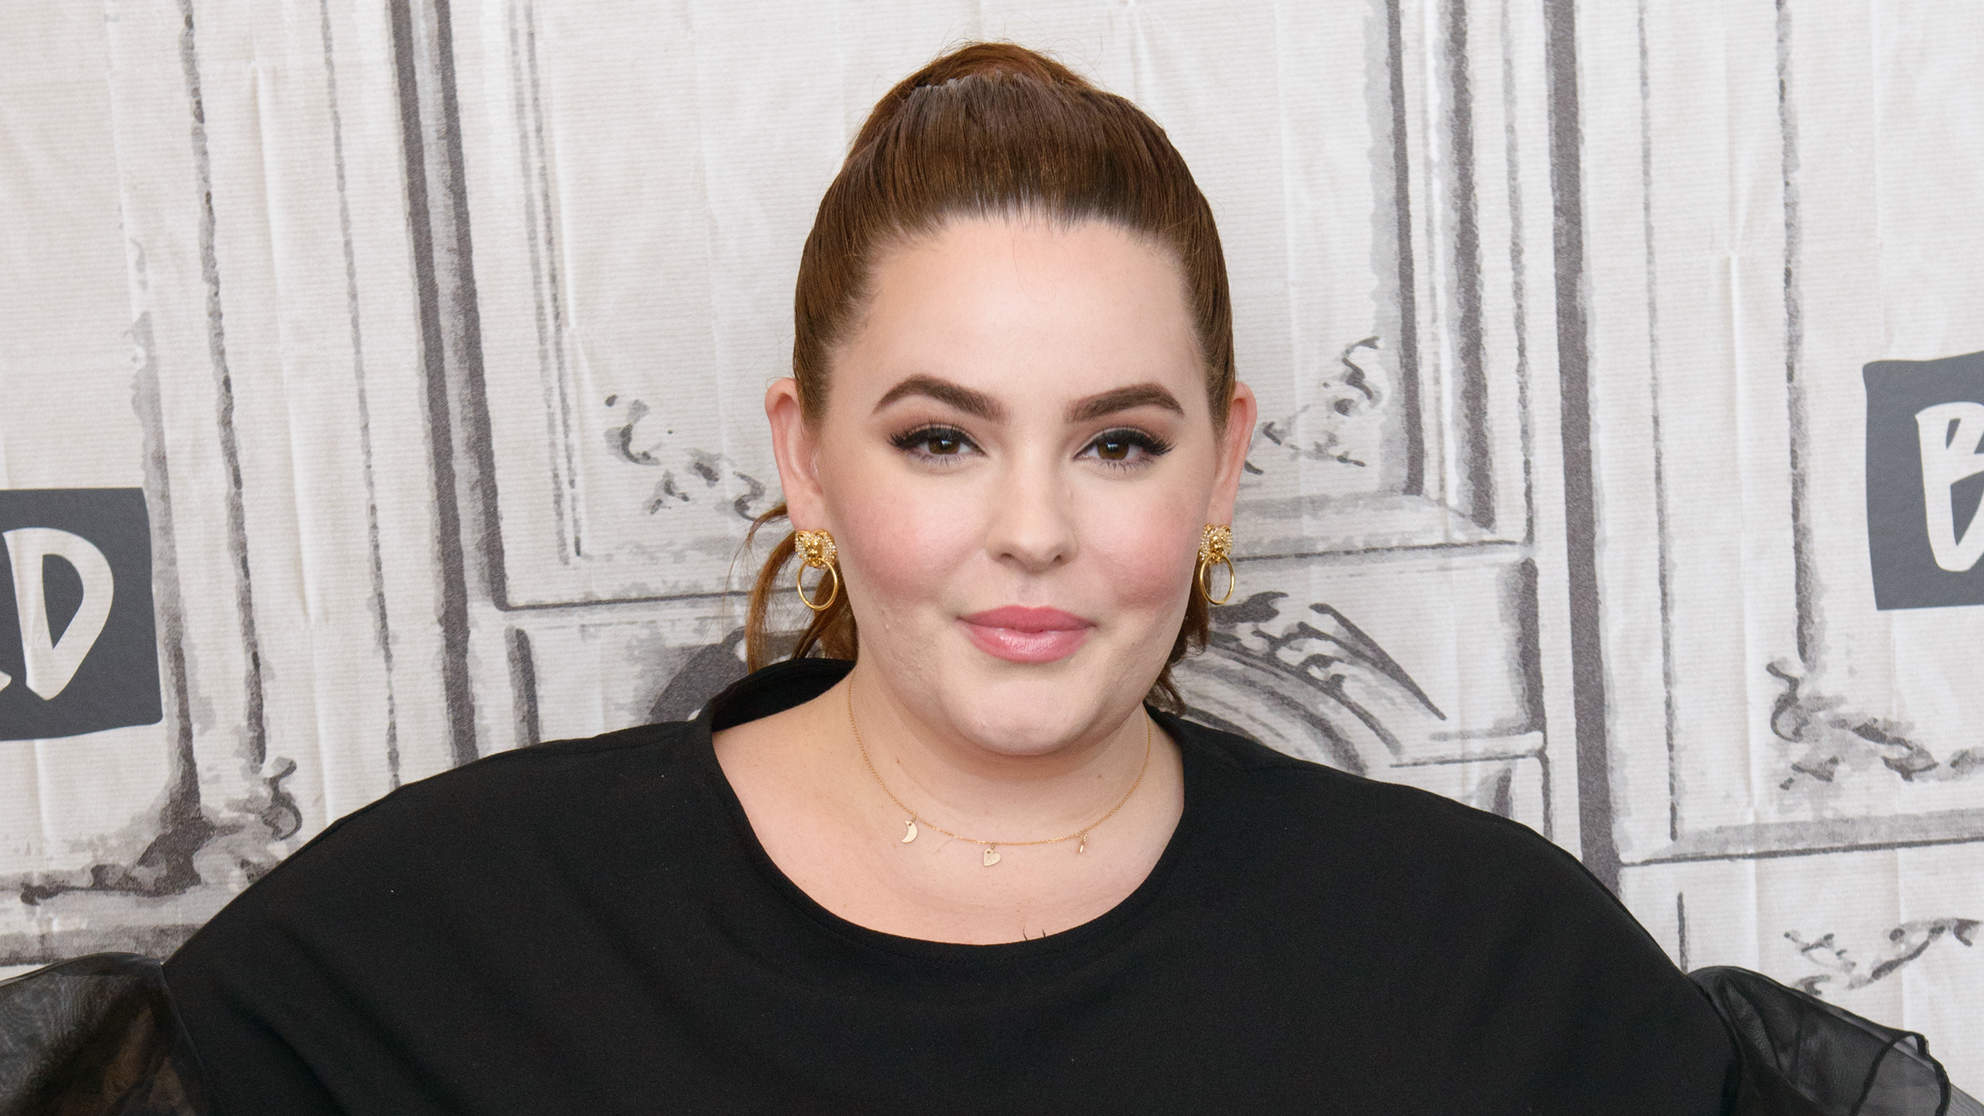 Tess Holliday Slams Retailer Revolve for Selling 'Being Fat Is Not Beautiful' Sweatshirt